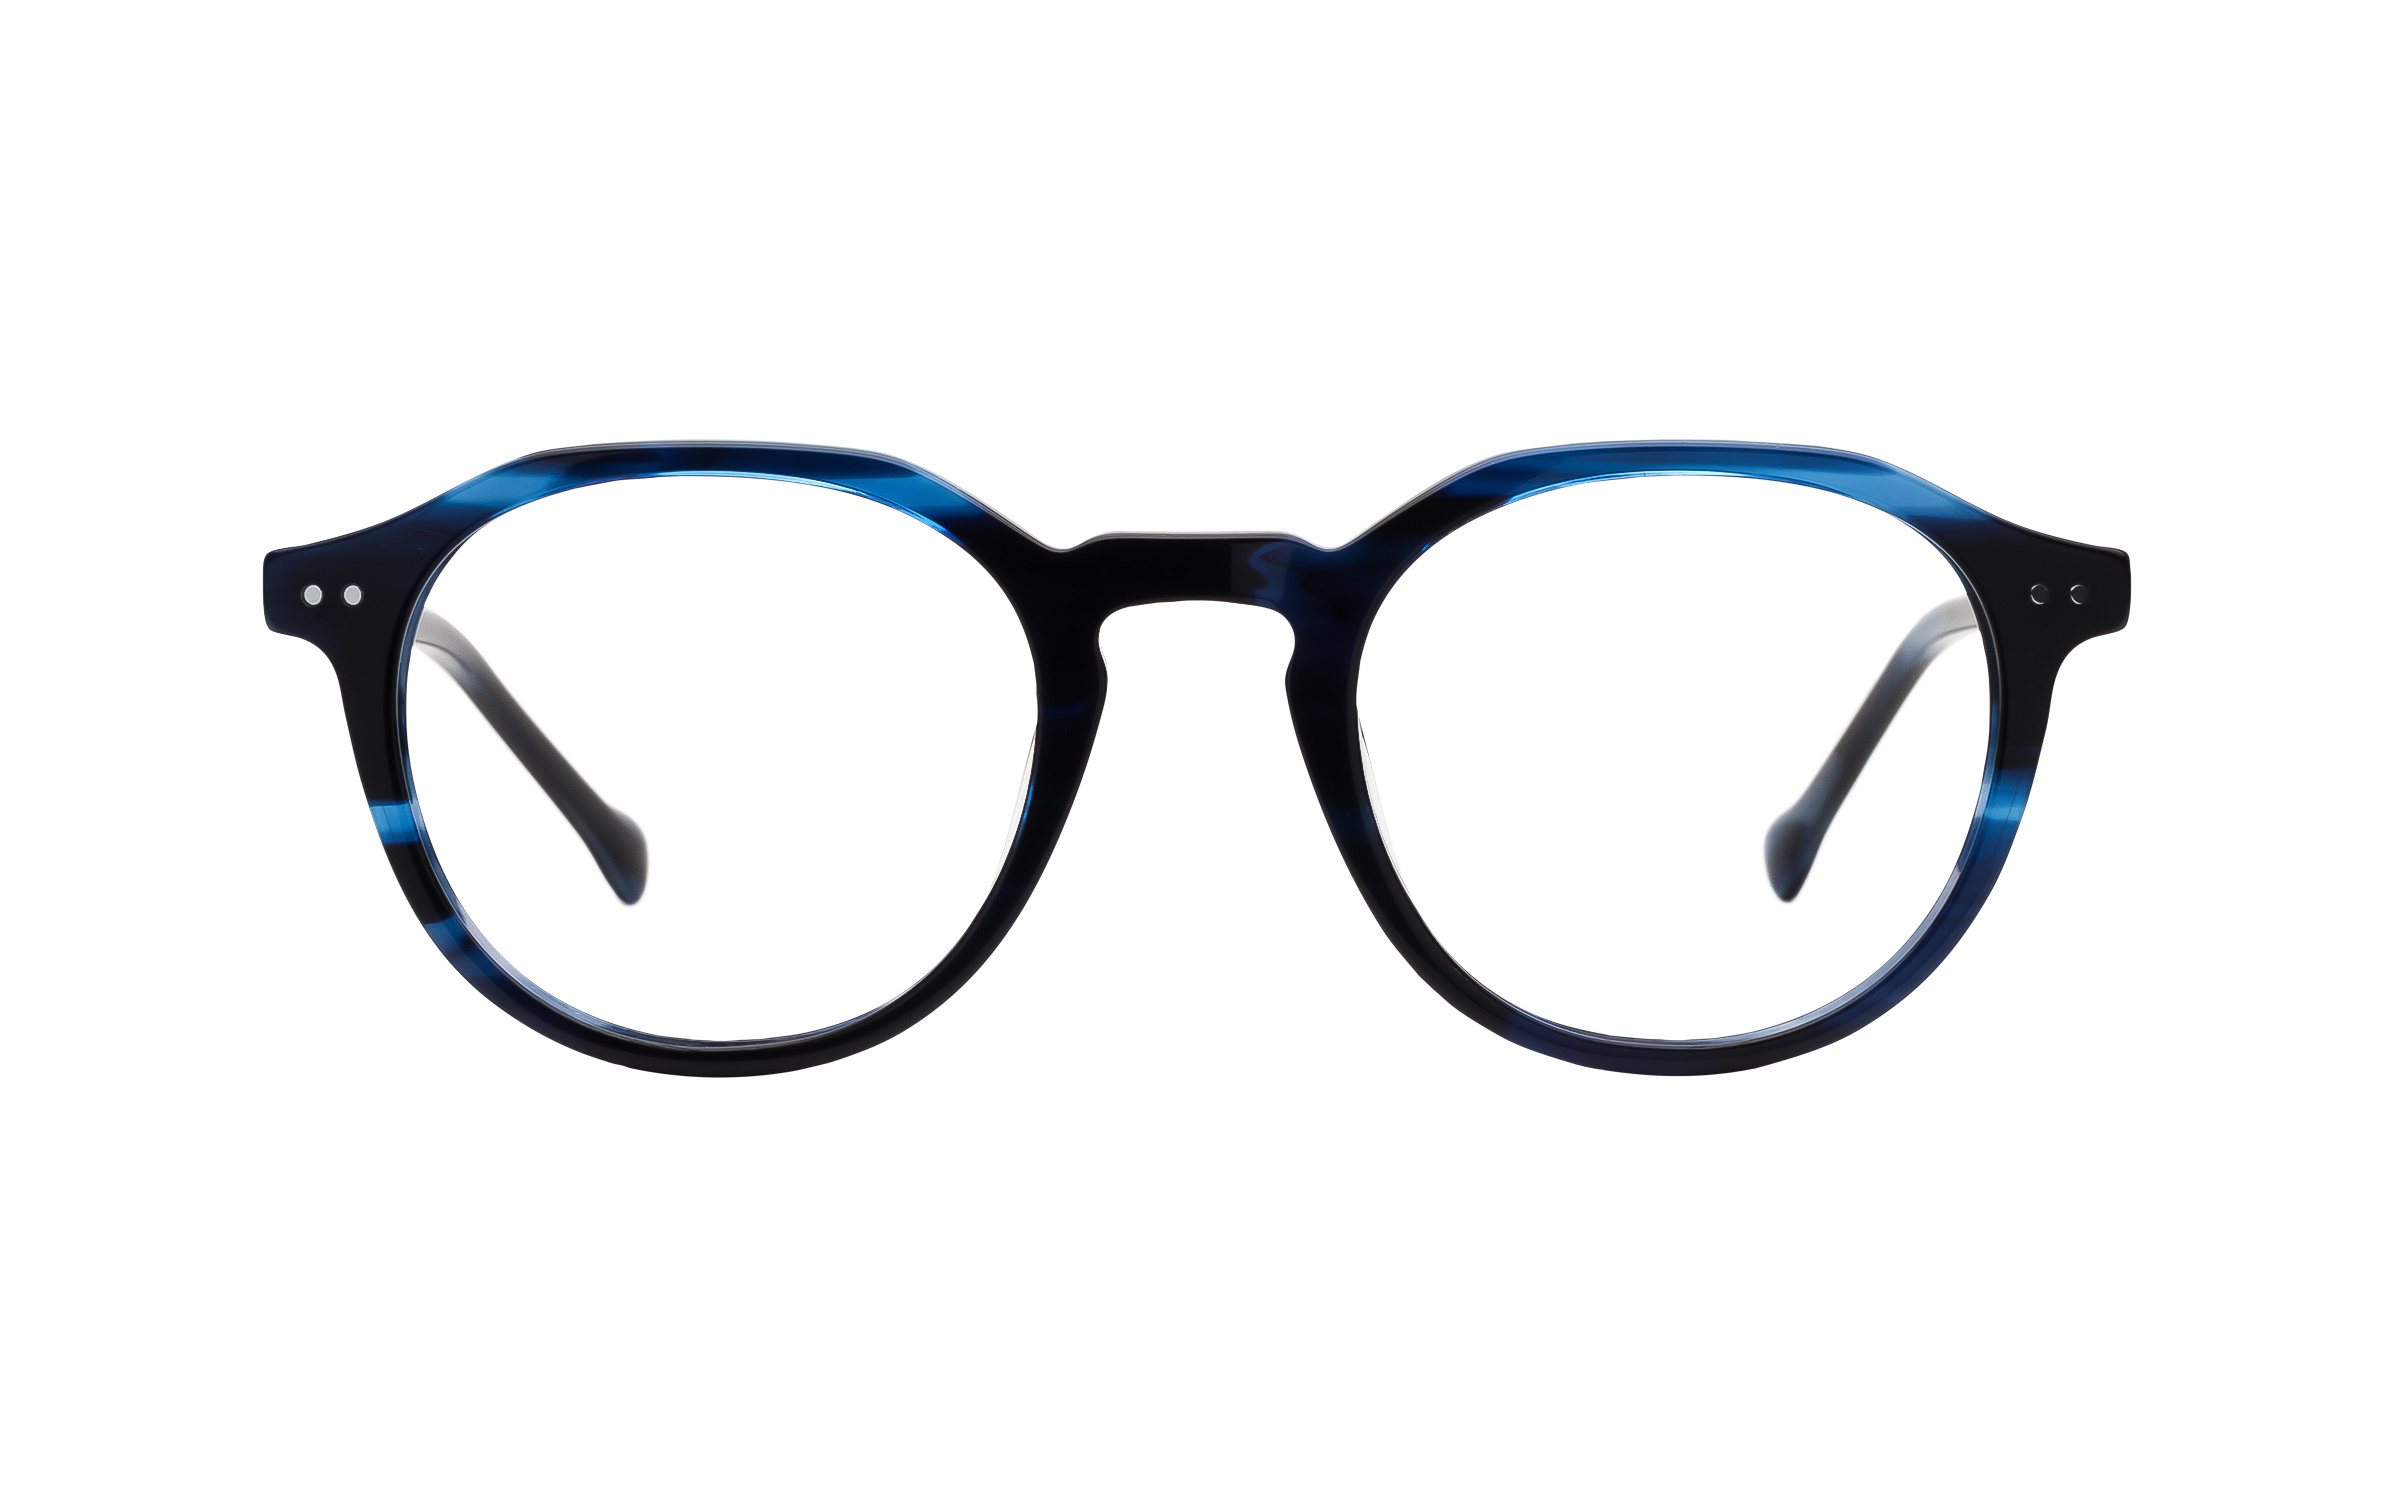 7 for All Mankind Glasses Vintage Blue Online Clearly